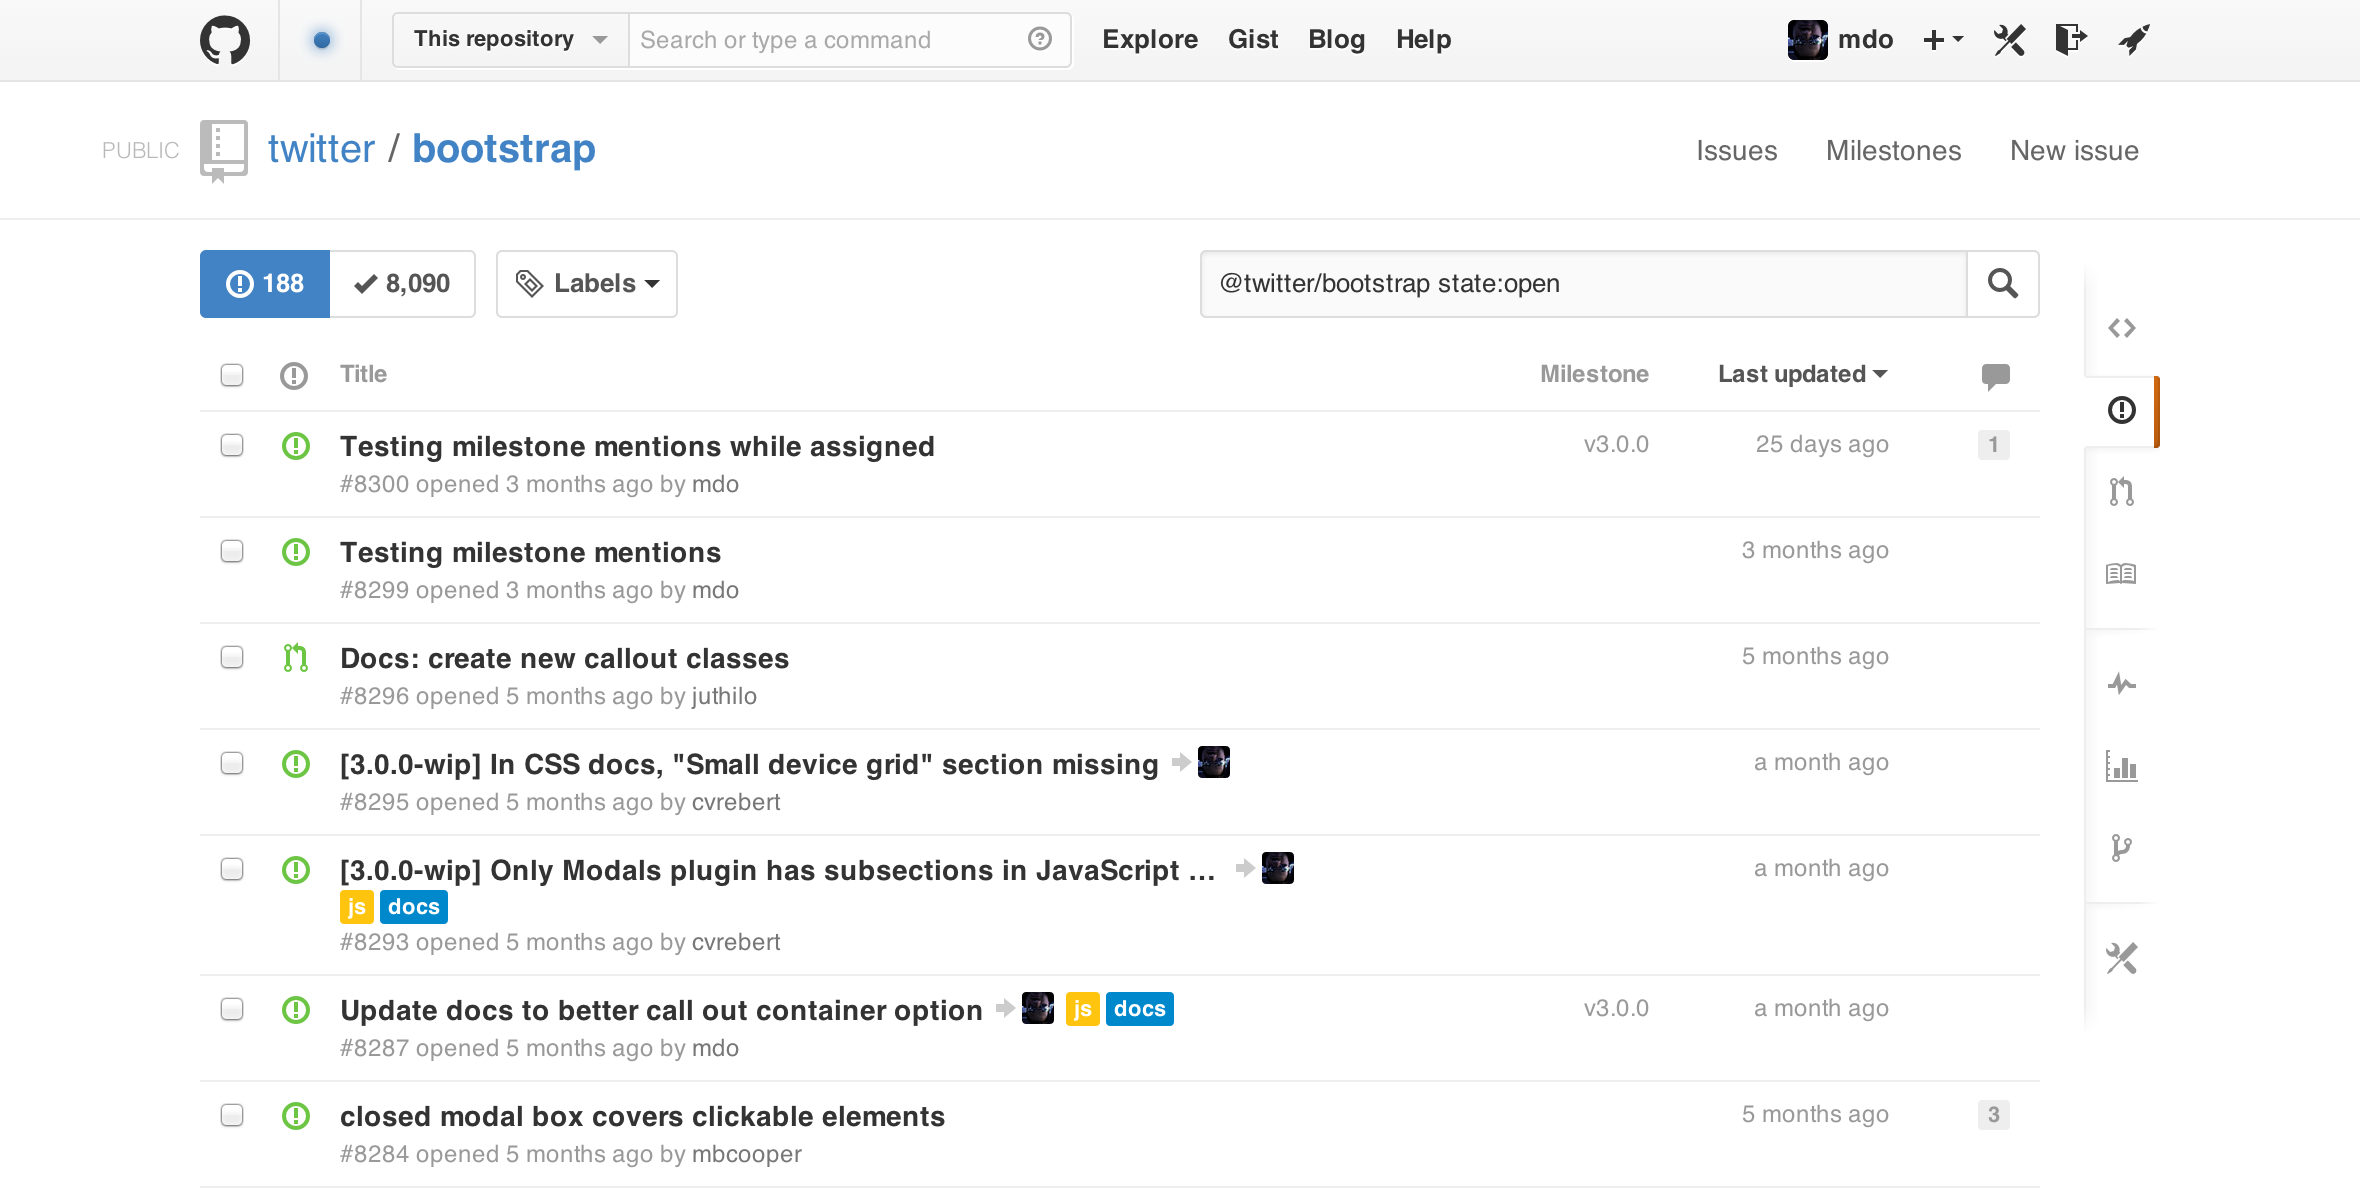 Shipping the new GitHub Issues · @mdo